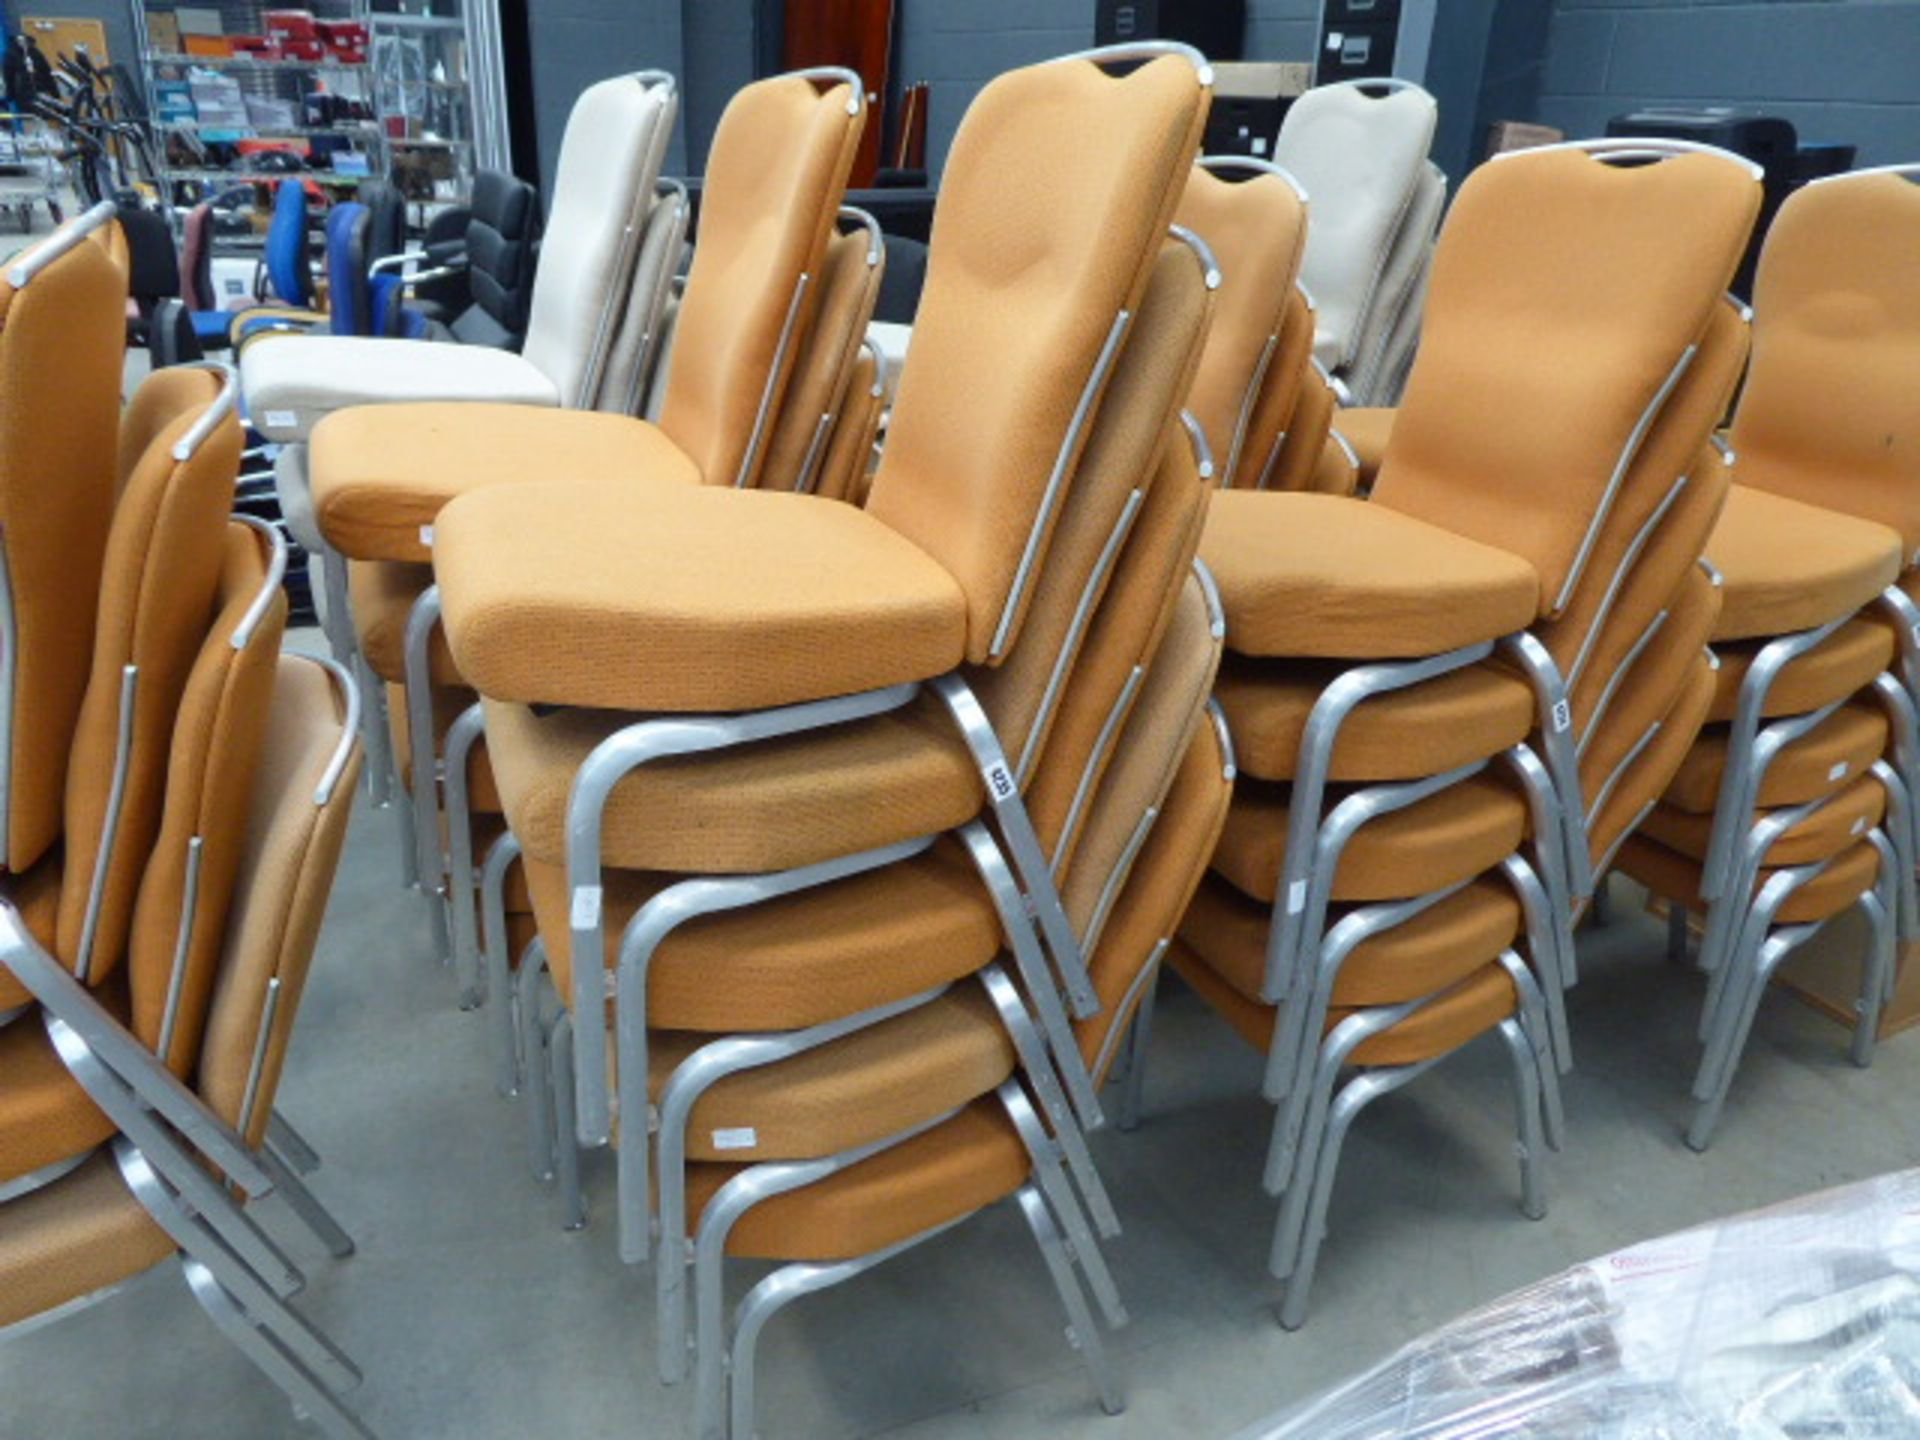 Lot 4235 - 10 orange cloth metal framed stacking chairs